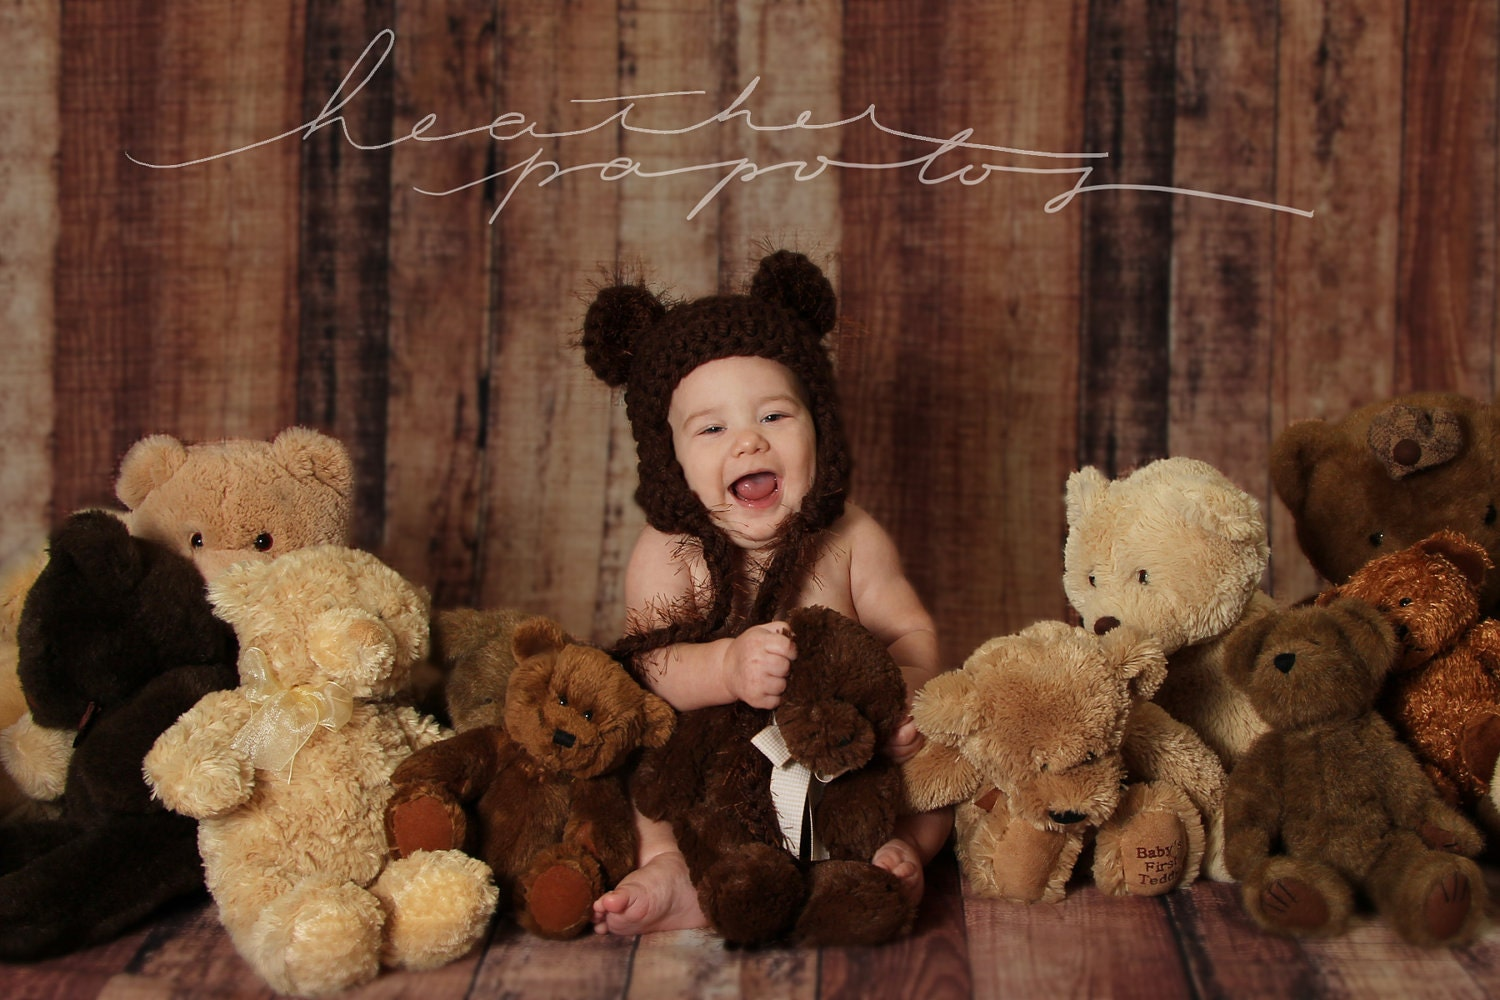 NEW -- Chocolate Fuzzy Eared Teddy Bear hat with braided tassels -- Newborn